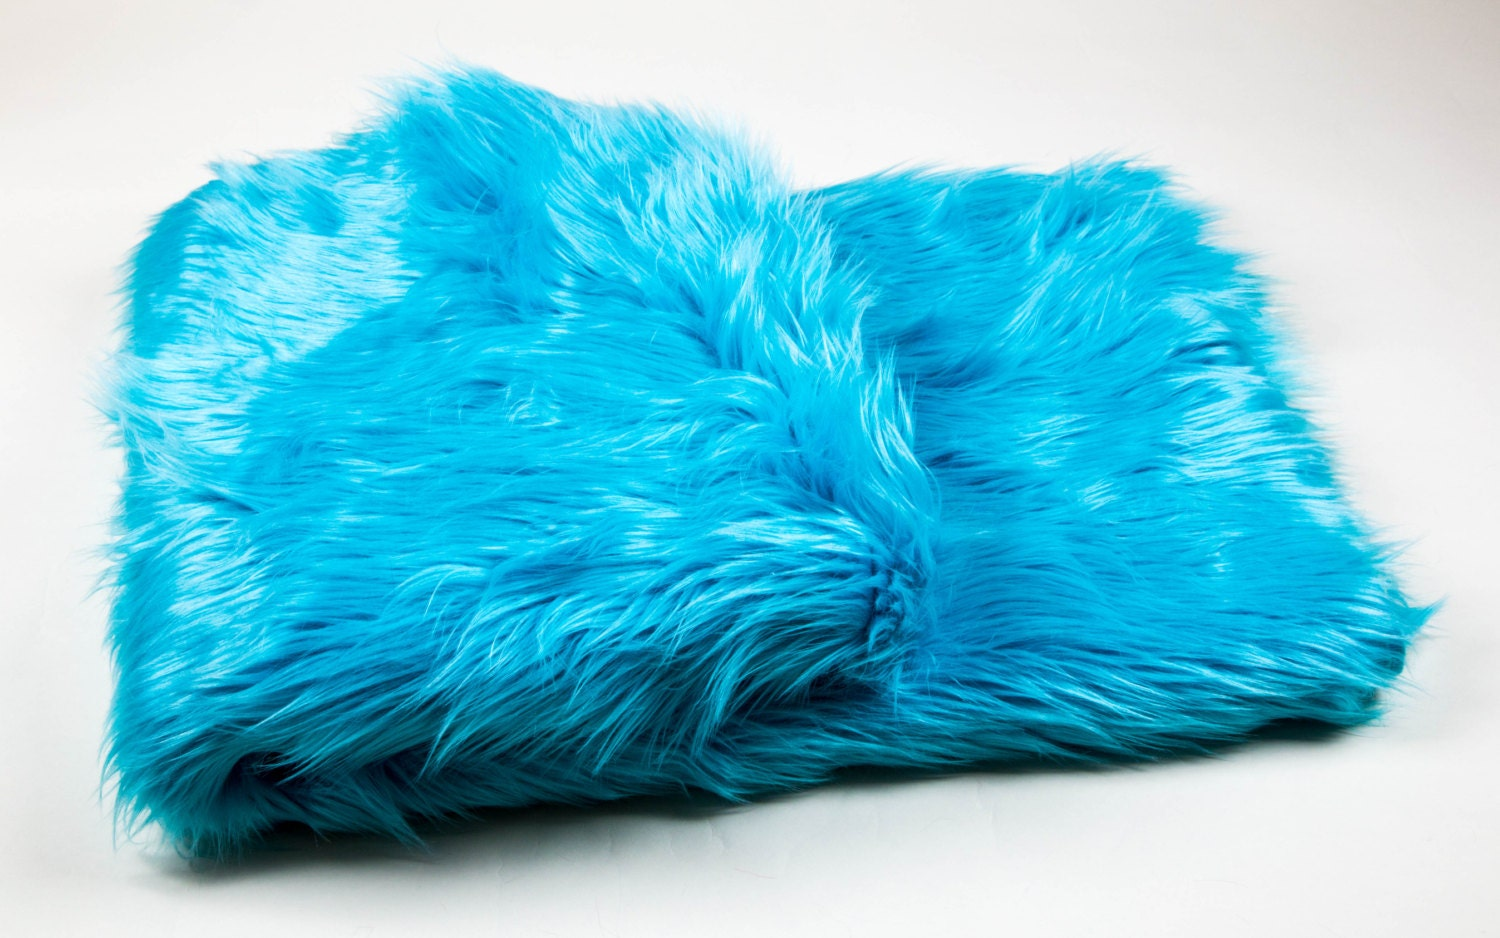 108 X 60 Aqua Faux Fur Shaggy Throw Blanket Bed